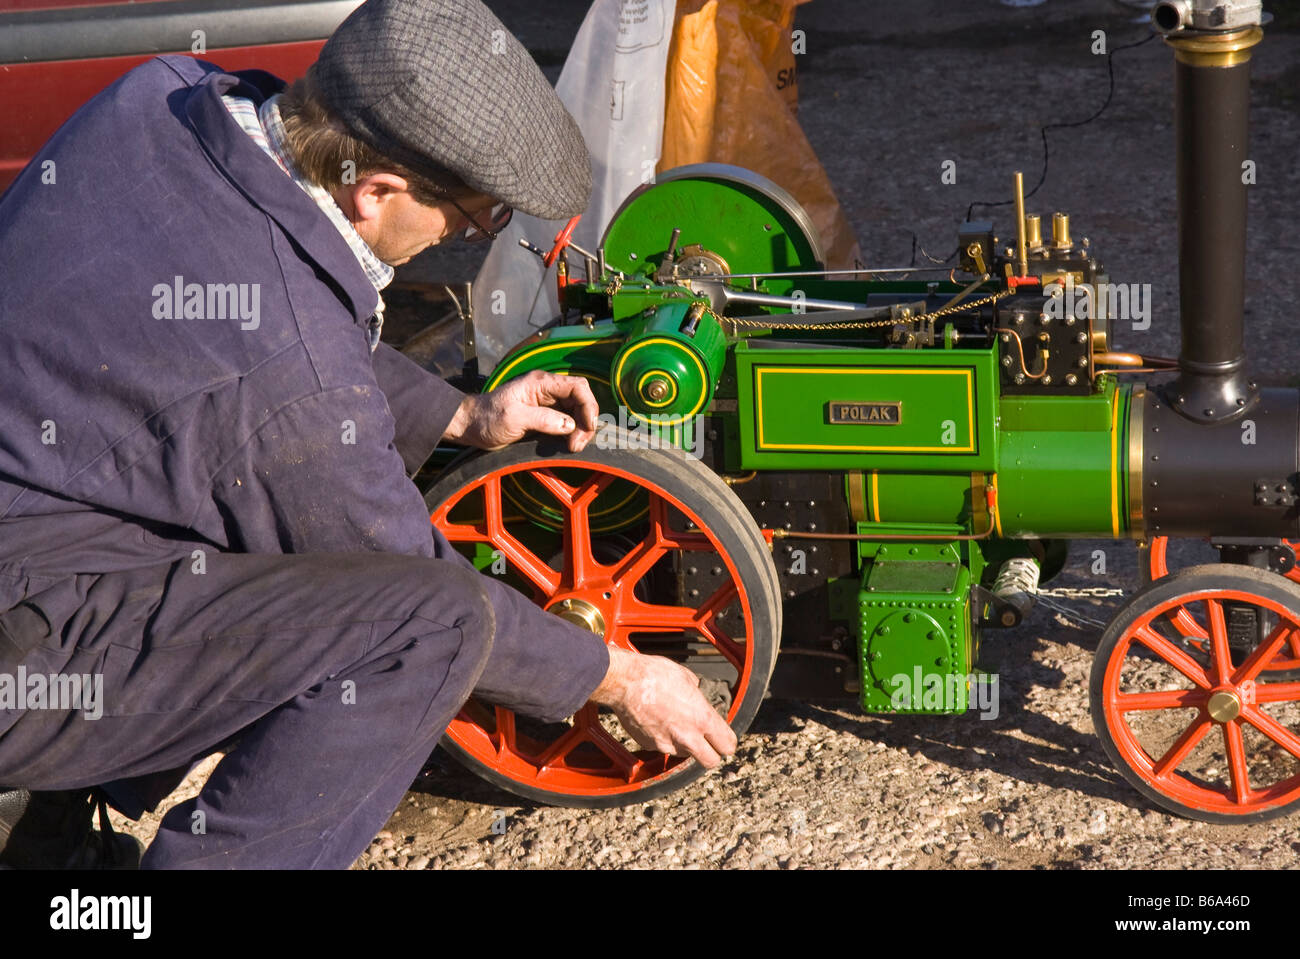 enthusiast cleaning his small steam engine - Stock Image